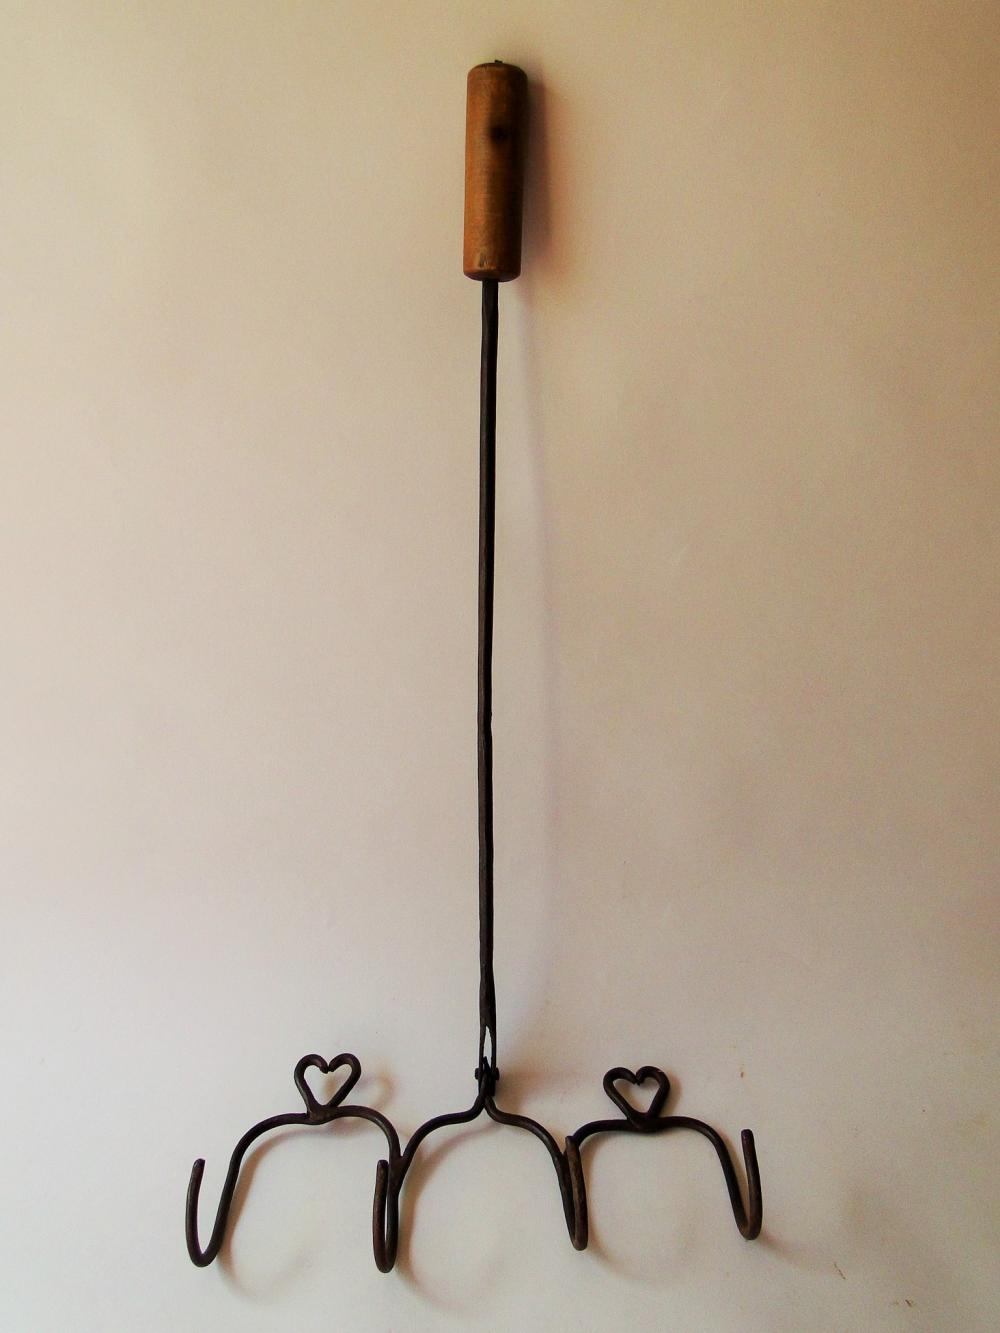 Lot 129: 18TH C WROUGHT IRON BIRD ROASTER